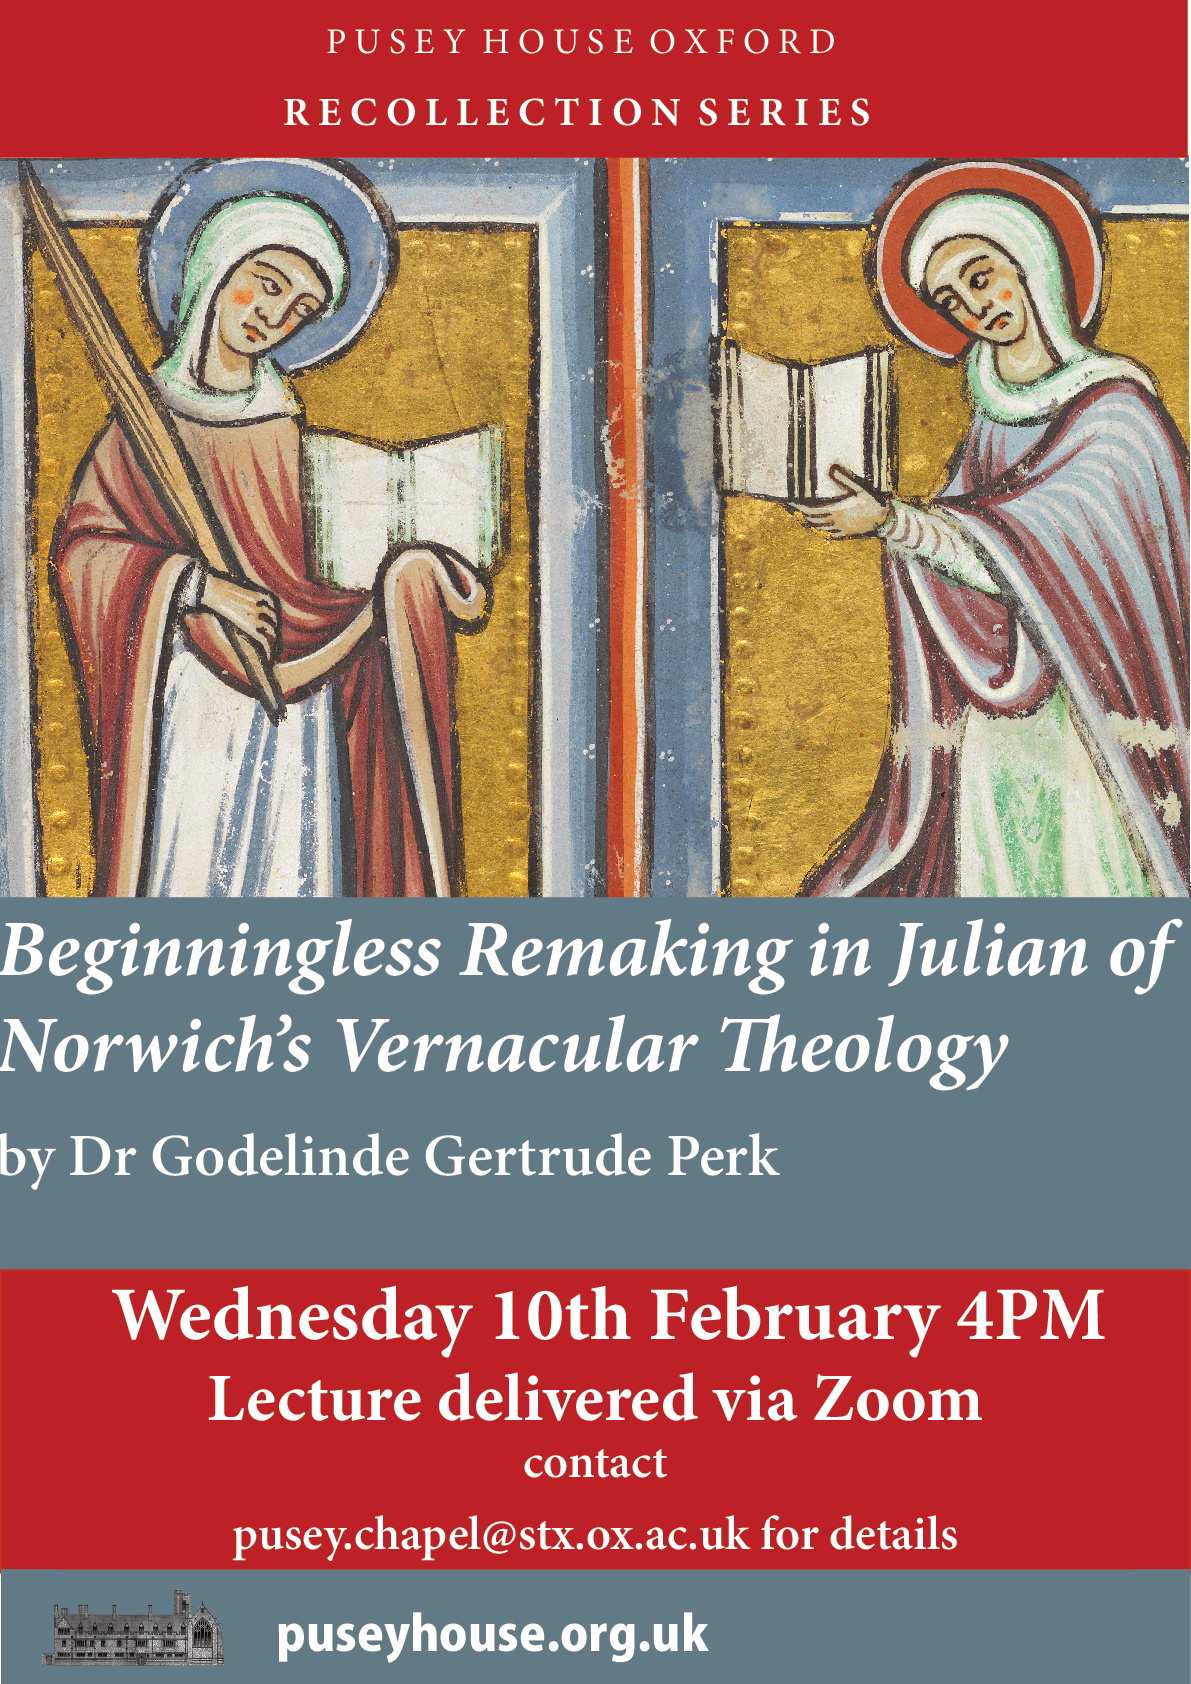 Wed., Feb 10th 4PM GMT, Beginningless Remaking in Julian of Norwich's Vernacular Theology